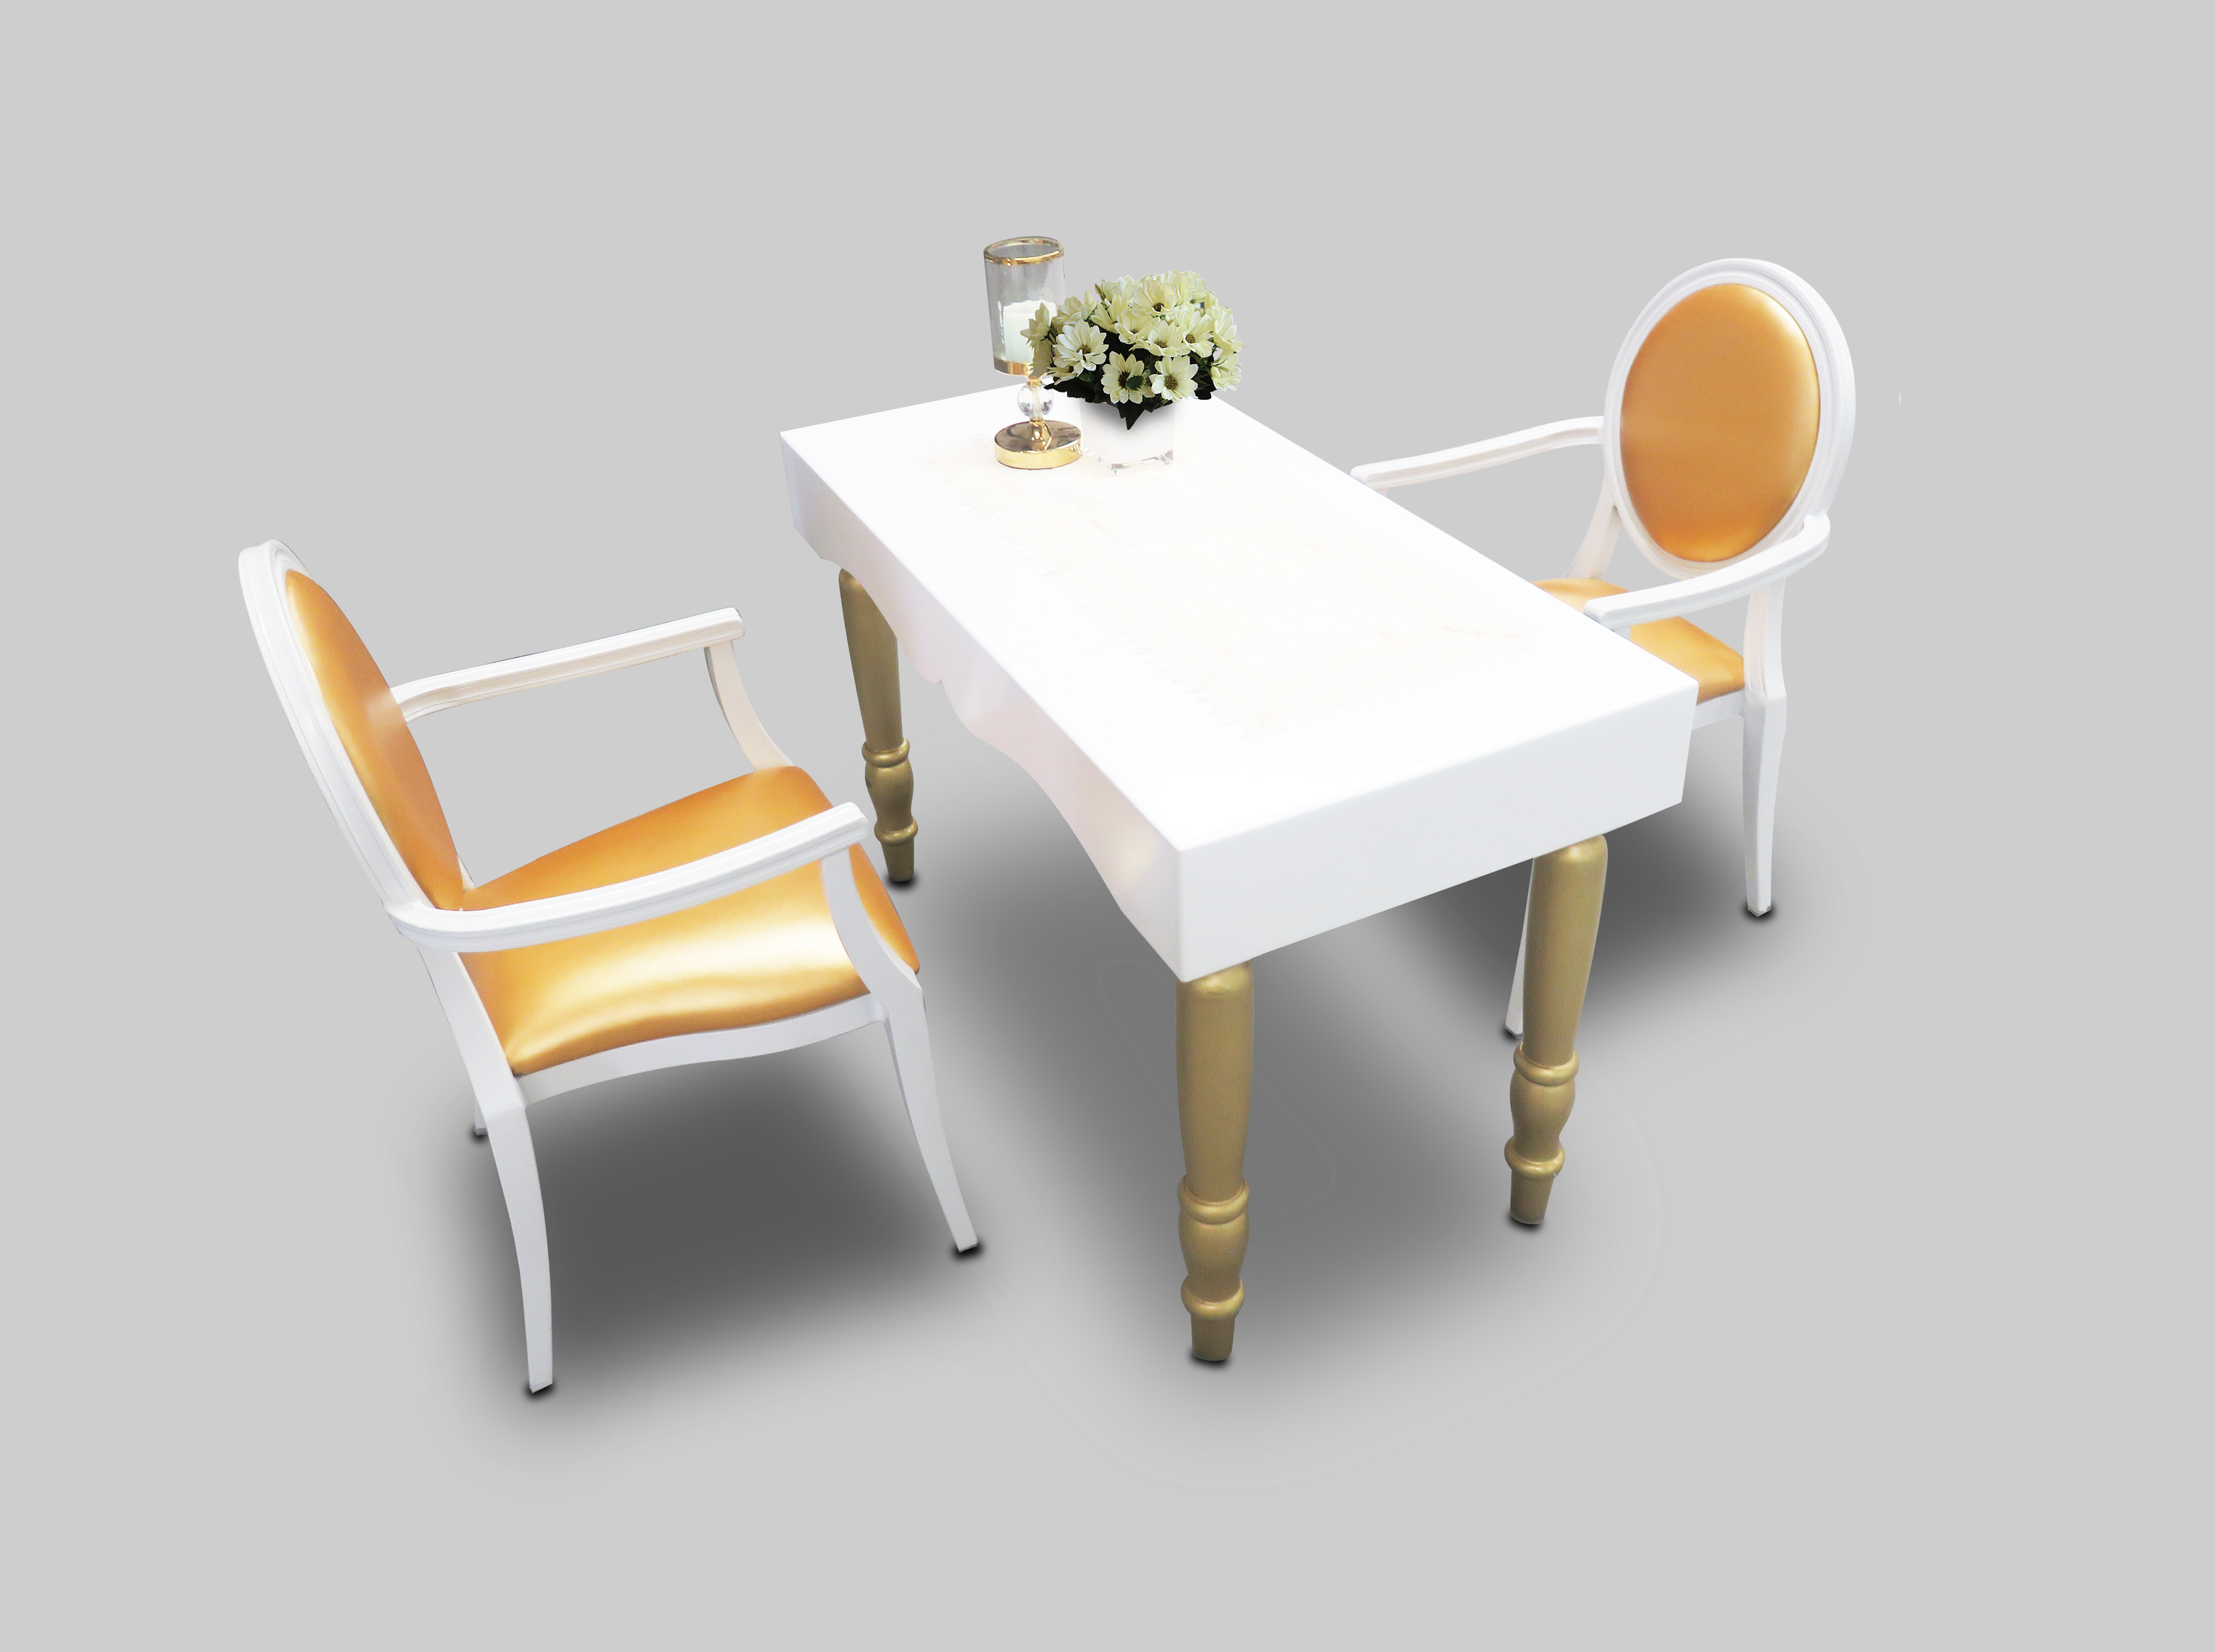 Awesome Dining Table Set Abu Dhabi Light of Dining Room : avalon curved rectangular dining table with gold dior dining chairs from lightofdiningroom.com size 5004 x 3732 png 4973kB